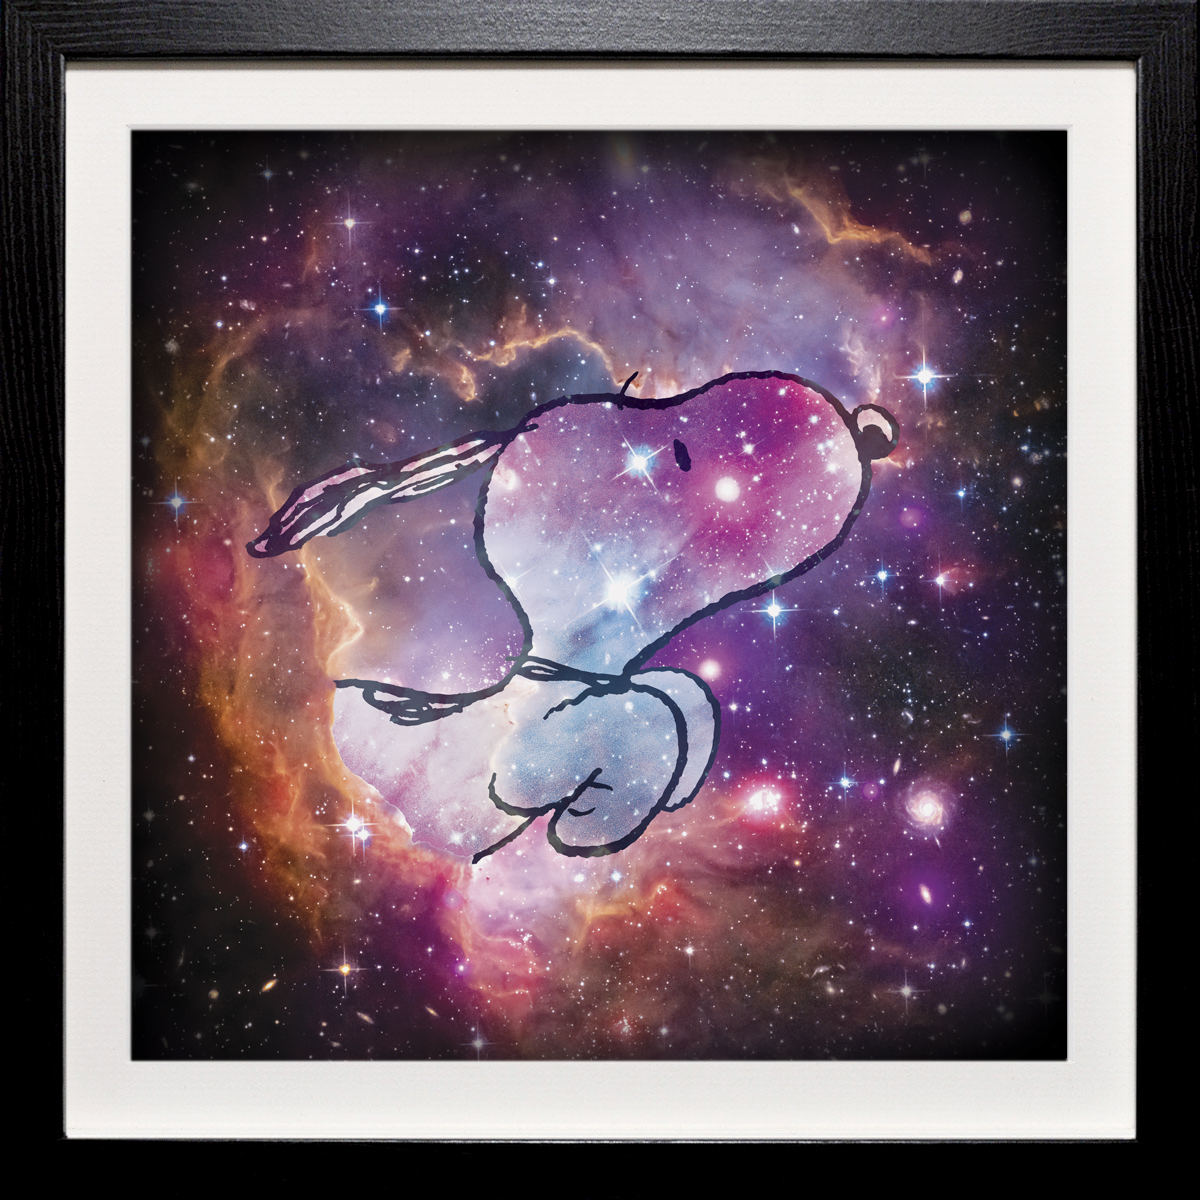 Reach for the Stars Print, www.artyougrewupwith.com £95